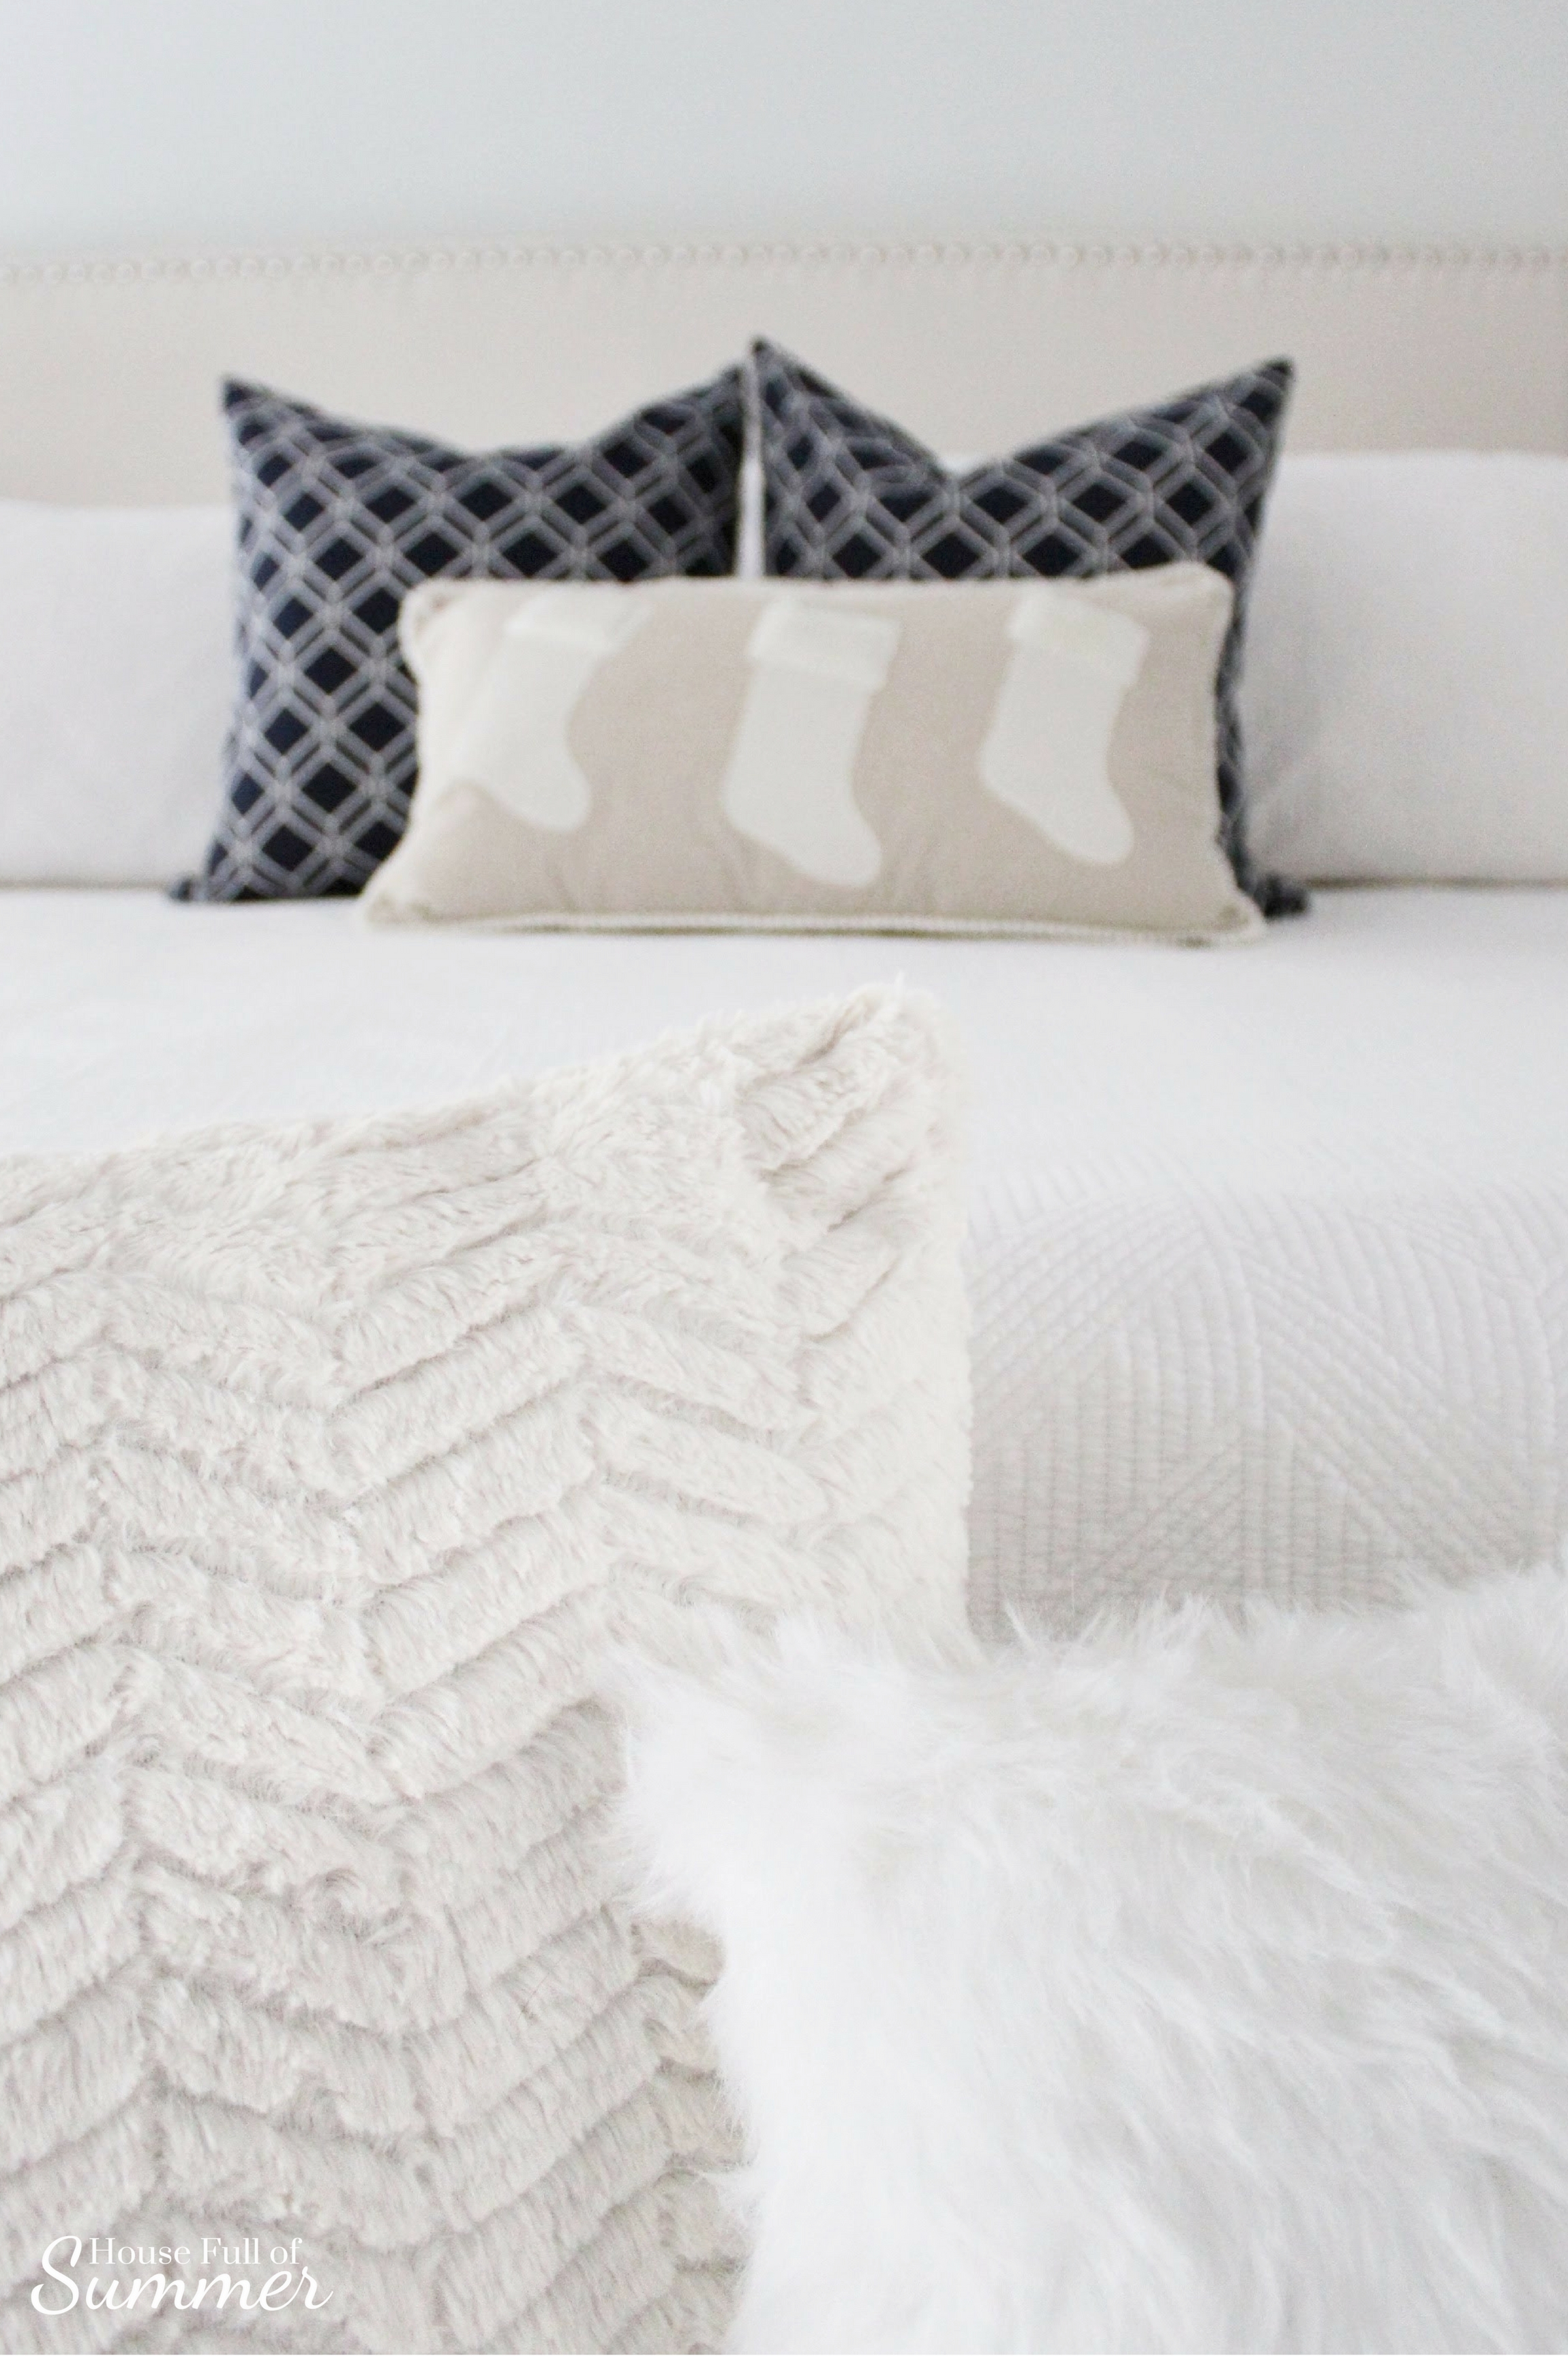 Classy Christmas Home Tour {Part Two} | House Full of Summer blog - Christmas bedding, neutral bedroom decor, navy and white Christmas ideas, Navy and white Christmas bedroom, blue christmas decorations, coastal home, blue and white area rug, tall nightstands